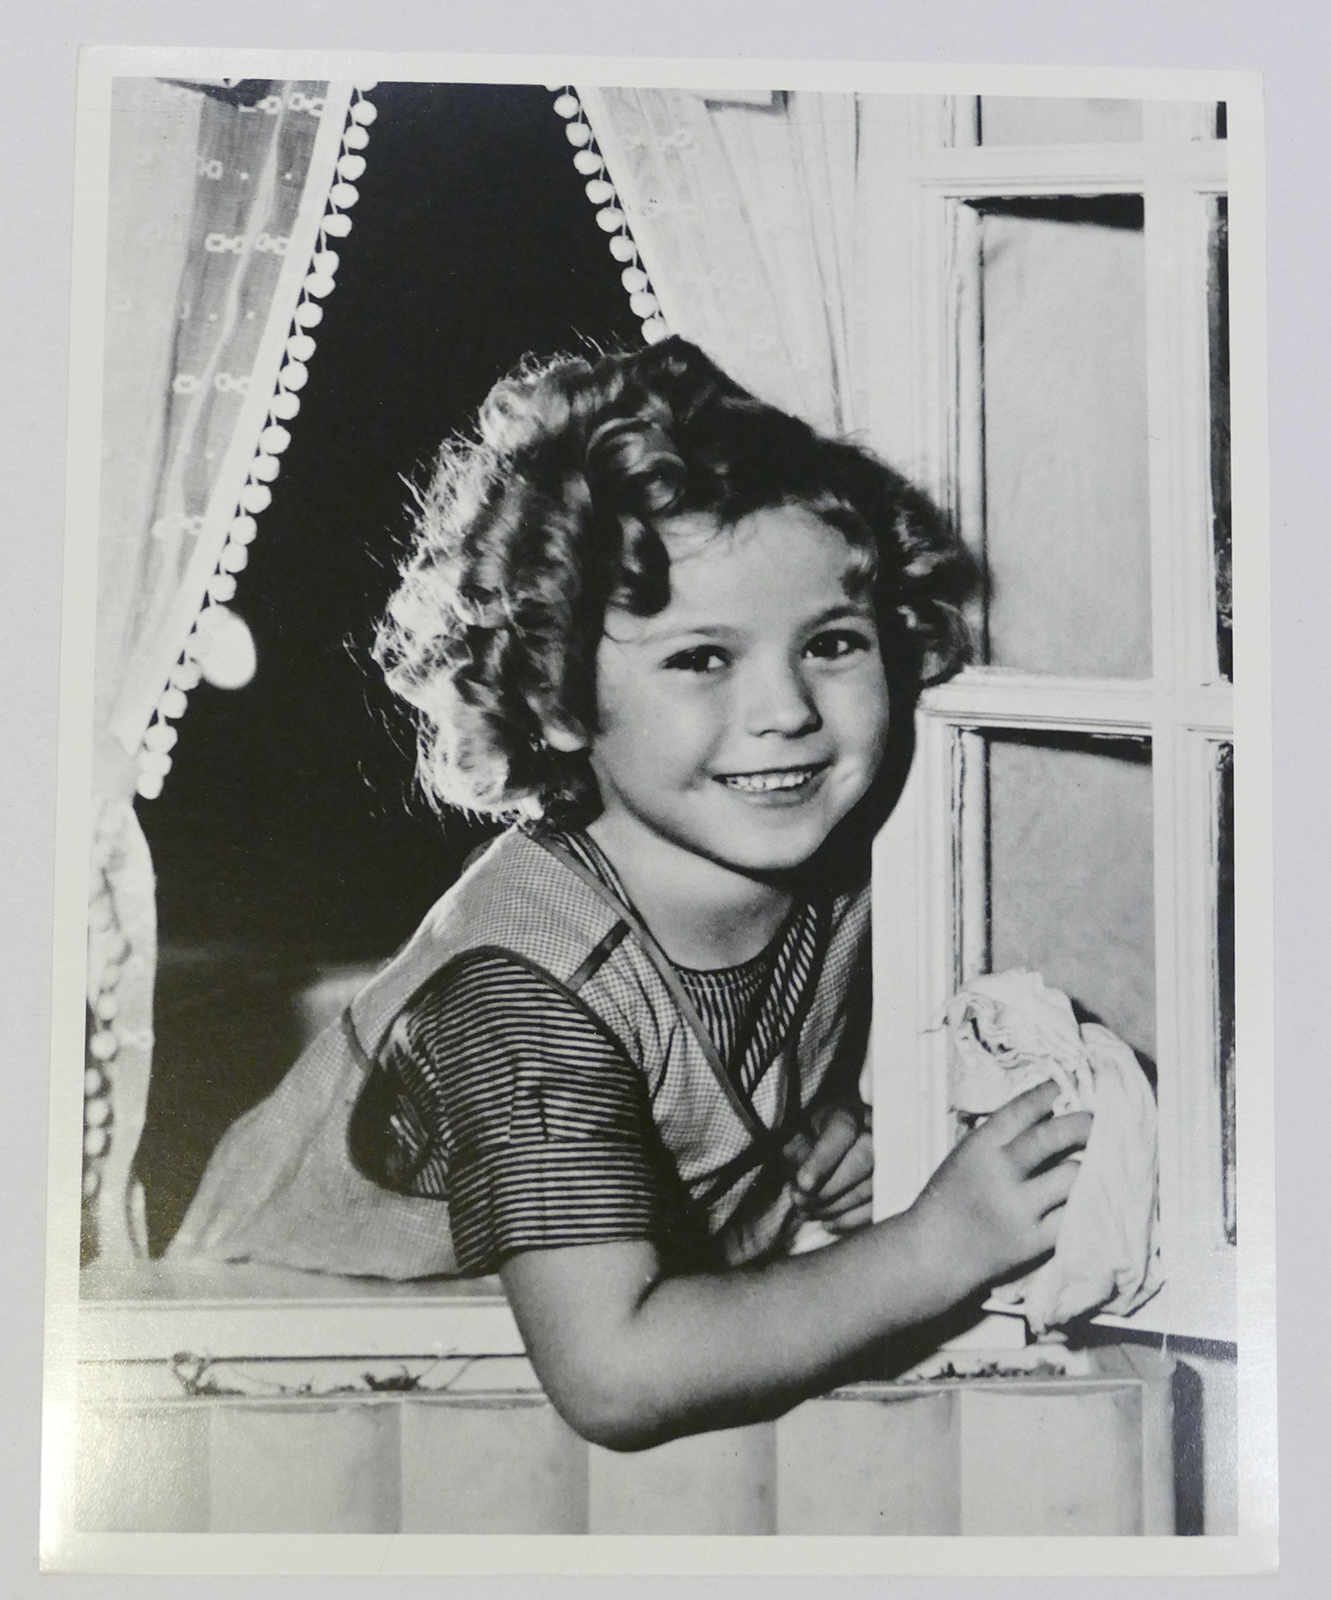 SHIRLEY TEMPLE PHOTO cleaning window